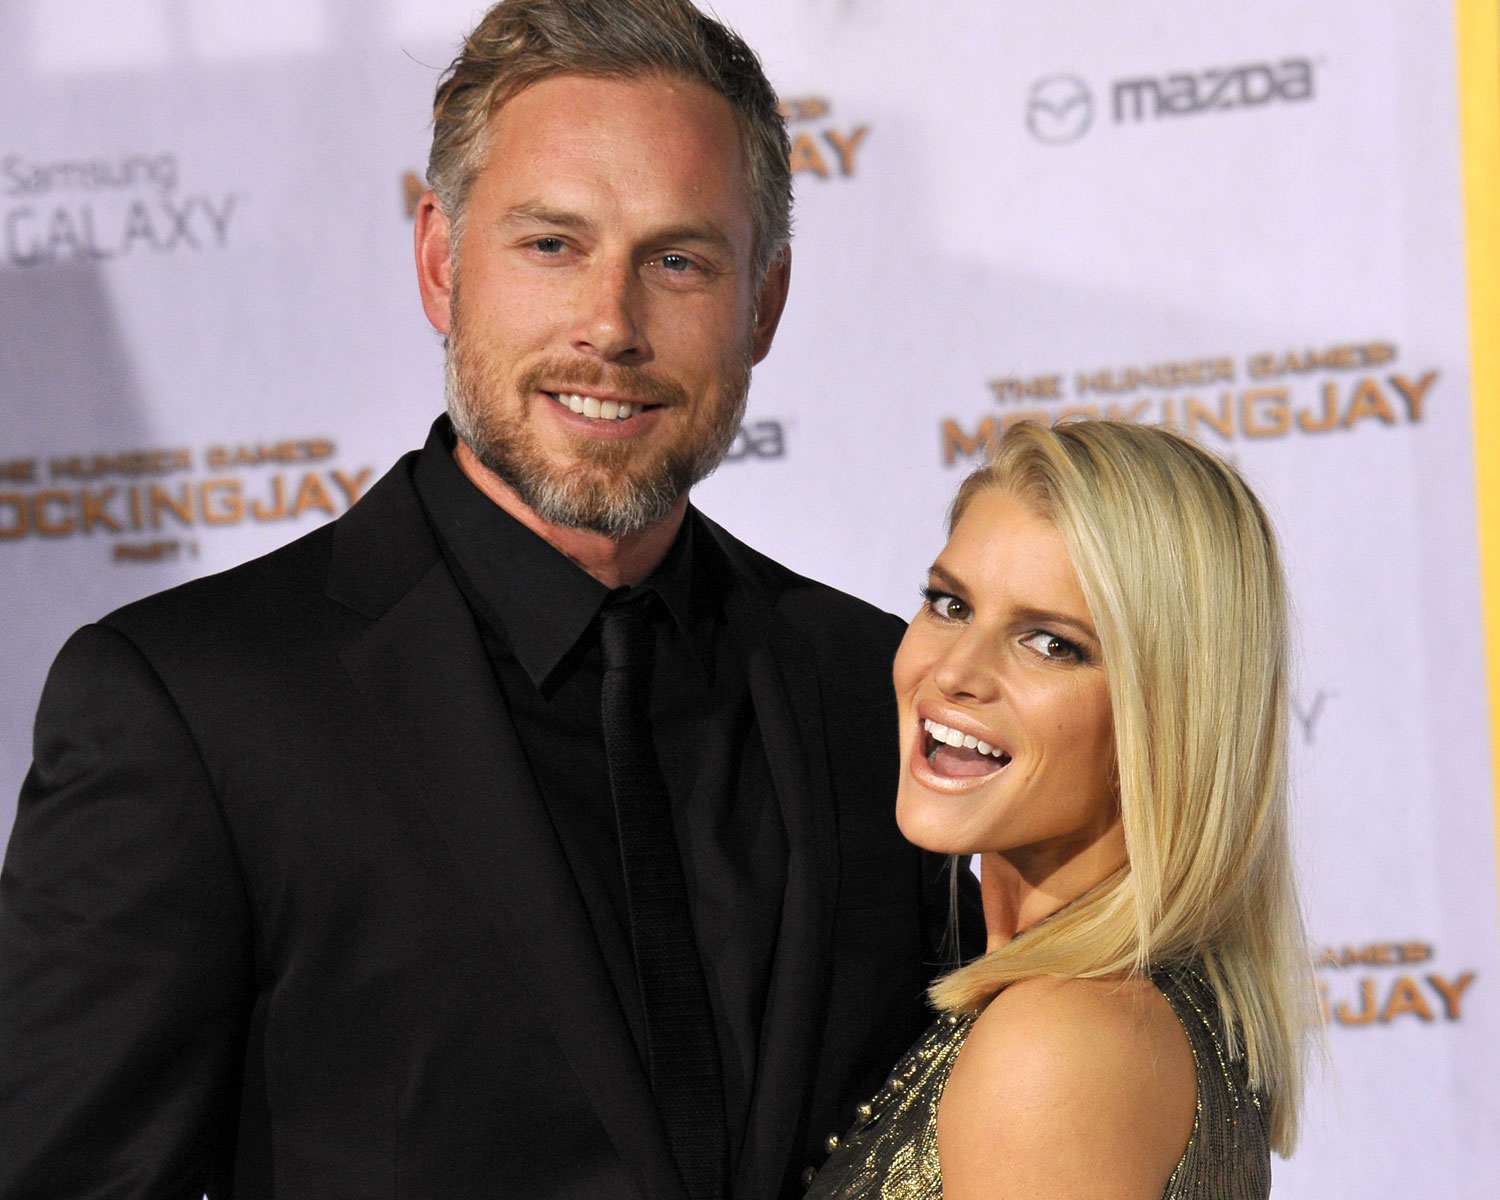 Jessica Simpson Eric Johnson Celebrate 6th Engagement